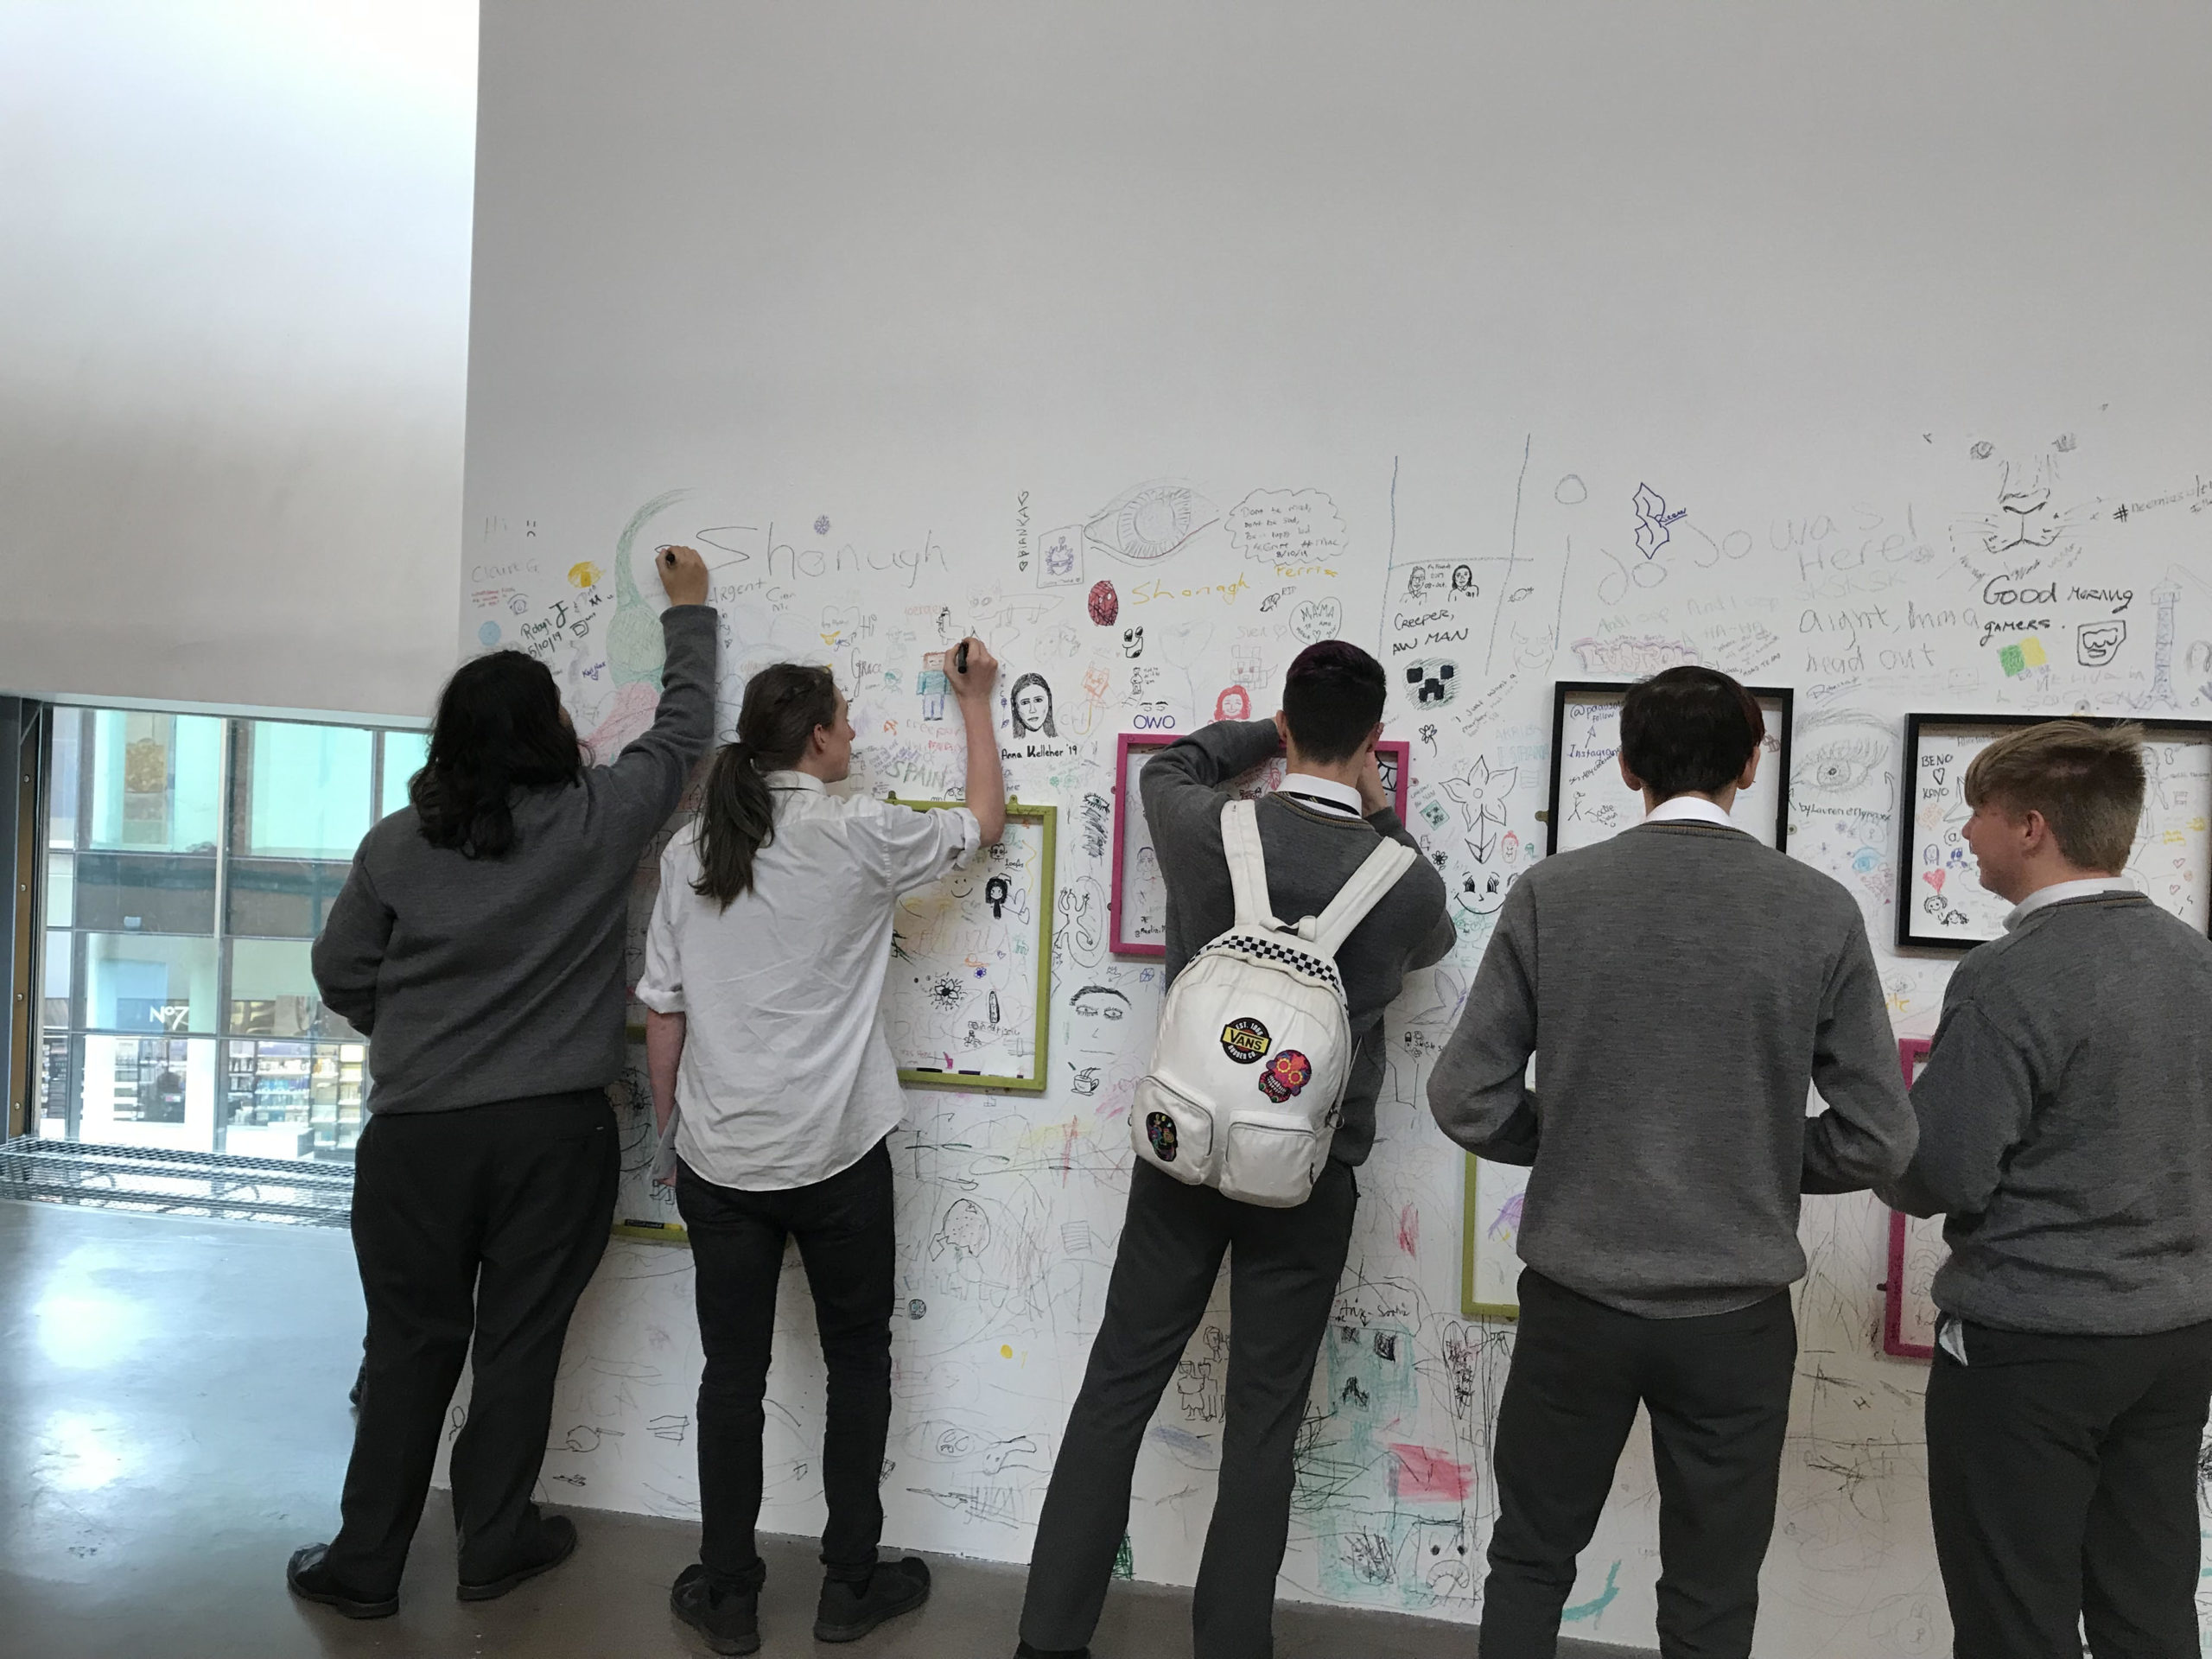 Crawford Art Gallery reaches out to leaving cert students and teachers